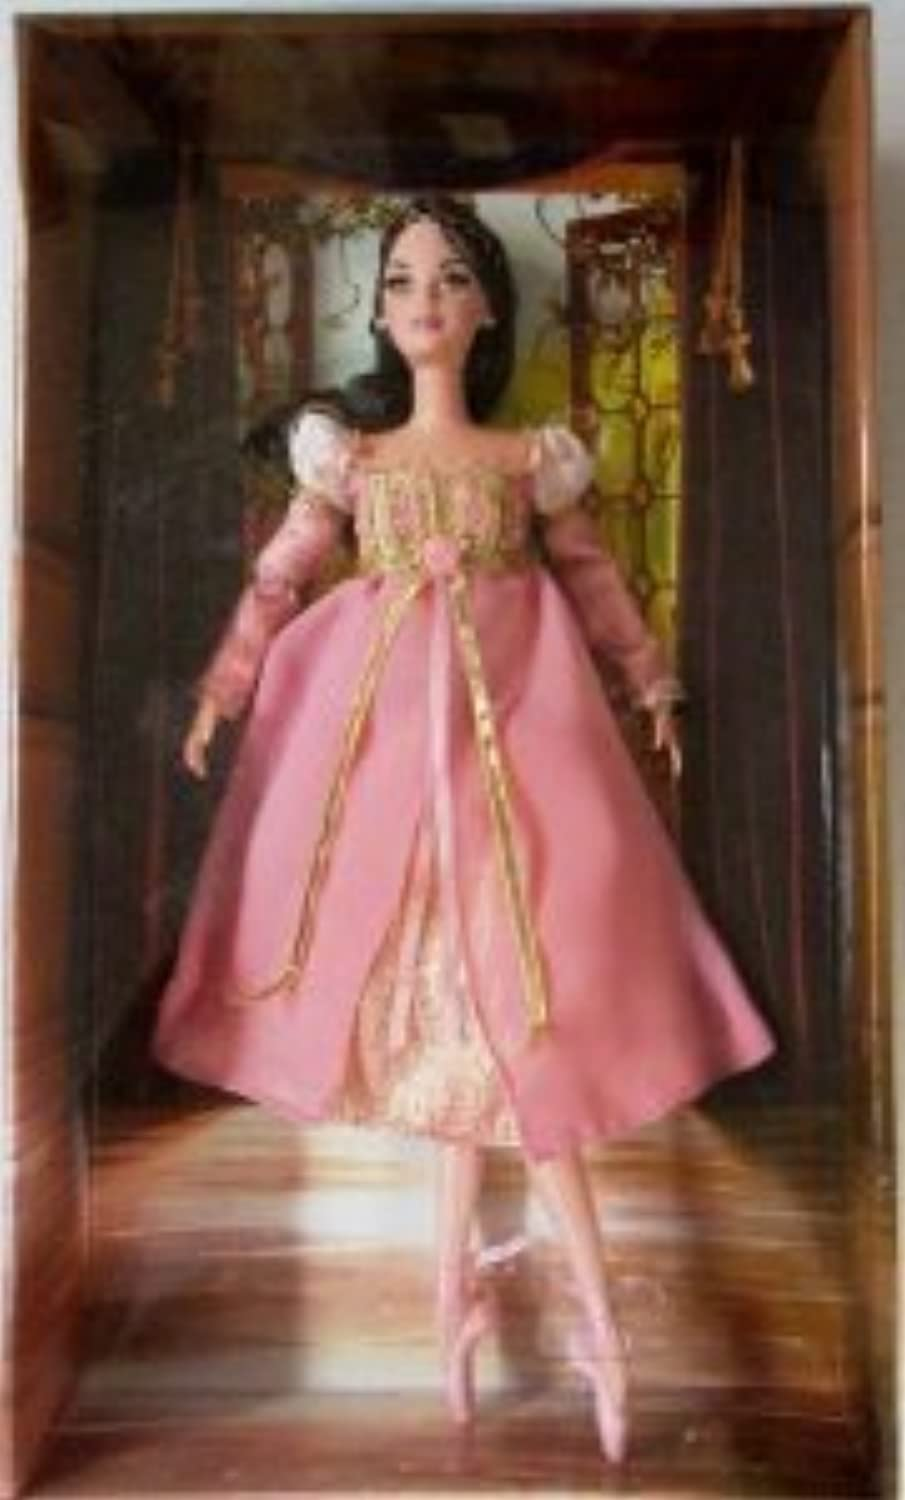 Barbie(バービー) Collector - Barbie(バービー) As Juliet From Shakespeare's Romeo and Juliet ドール 人形 フィギュア(並行輸入)